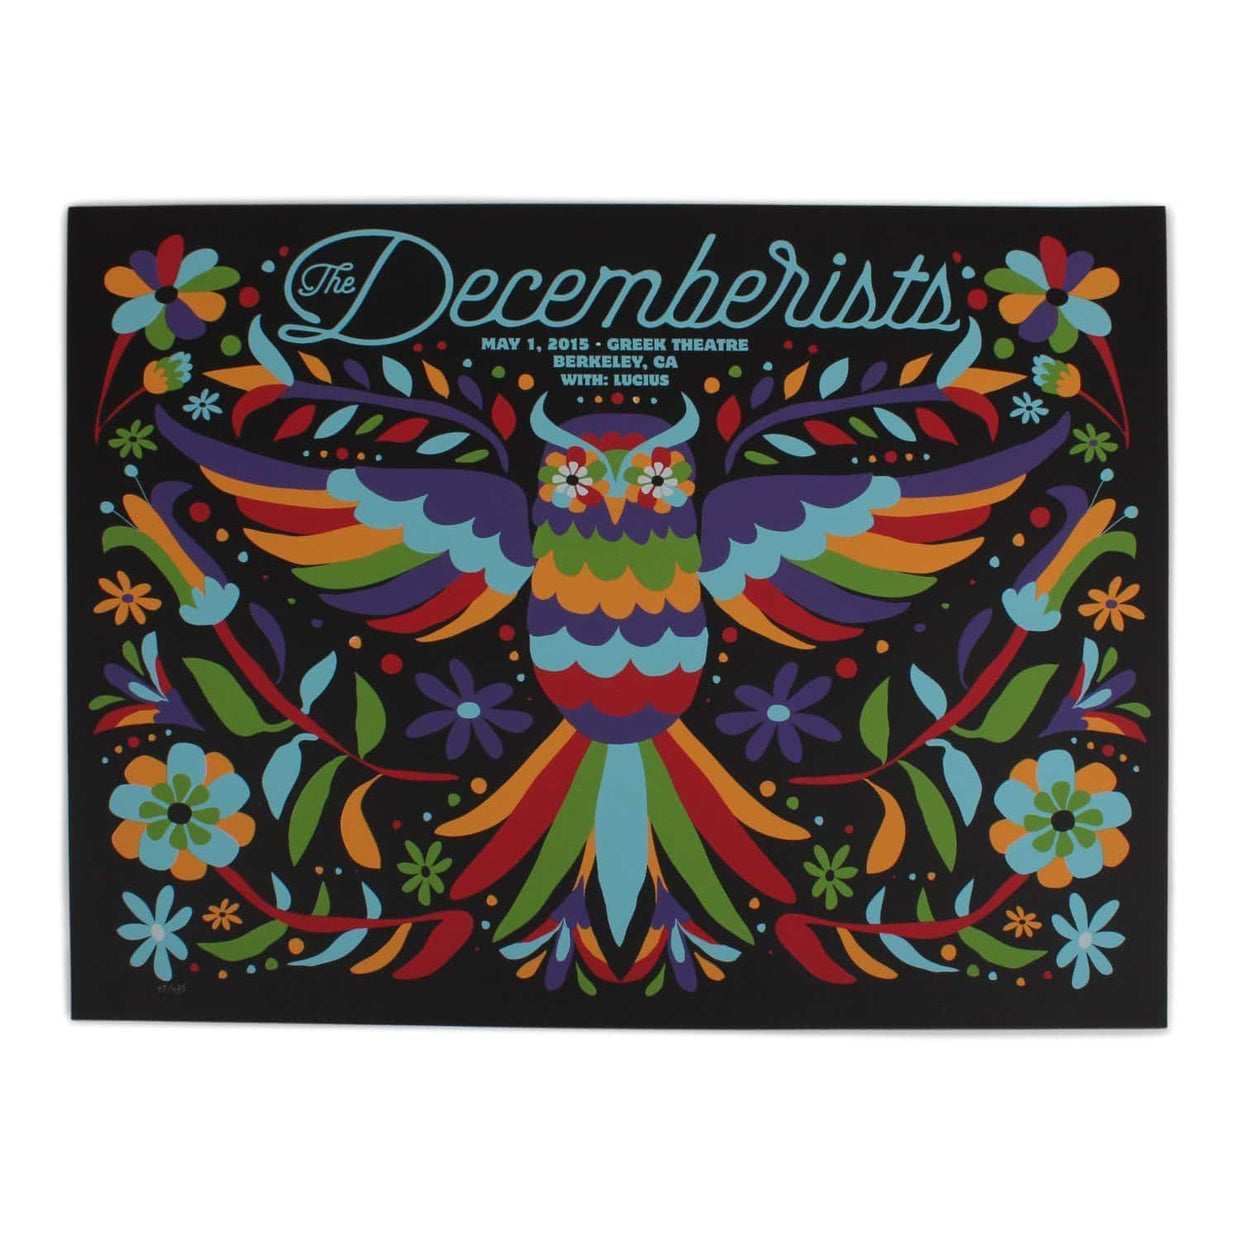 The Decemberists at The Greek Theatre in Berkley 2015 Poster - 18